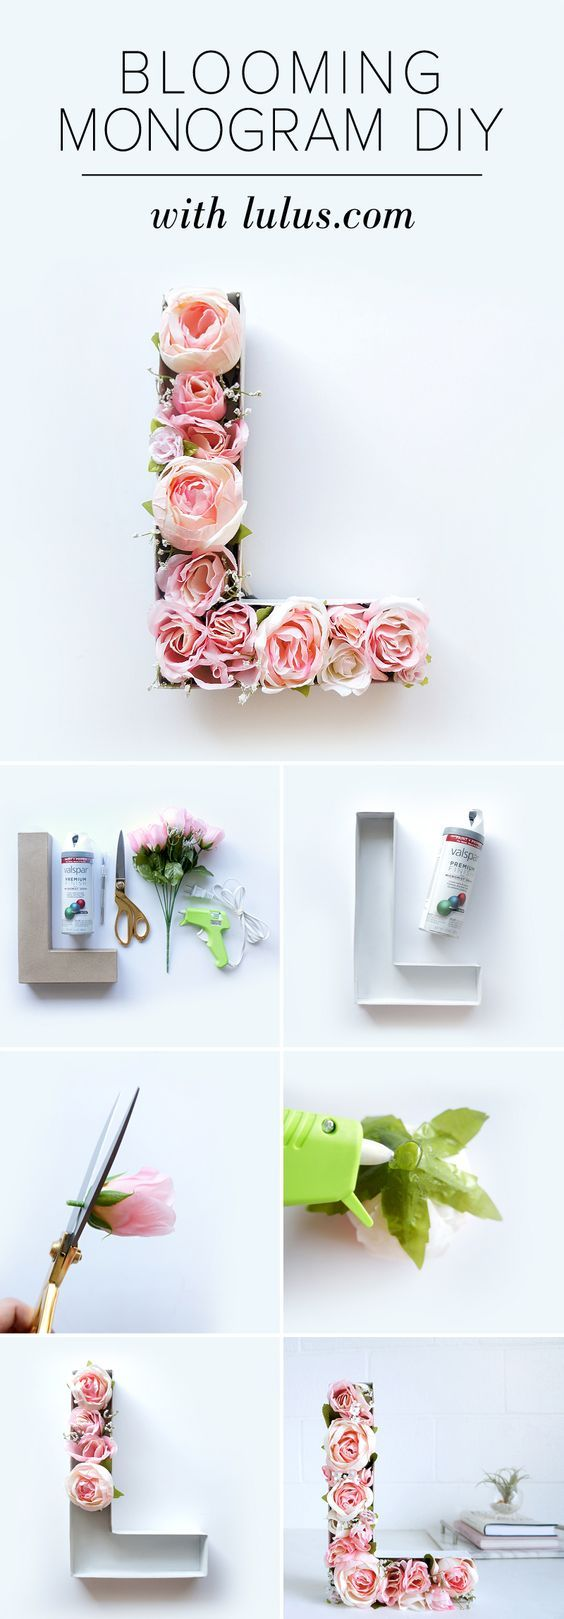 { Blooming monogram } 'golabowski' might be over doing it but 'love' or c & p would be cute! @loverly @brightpink @davidsbridal: